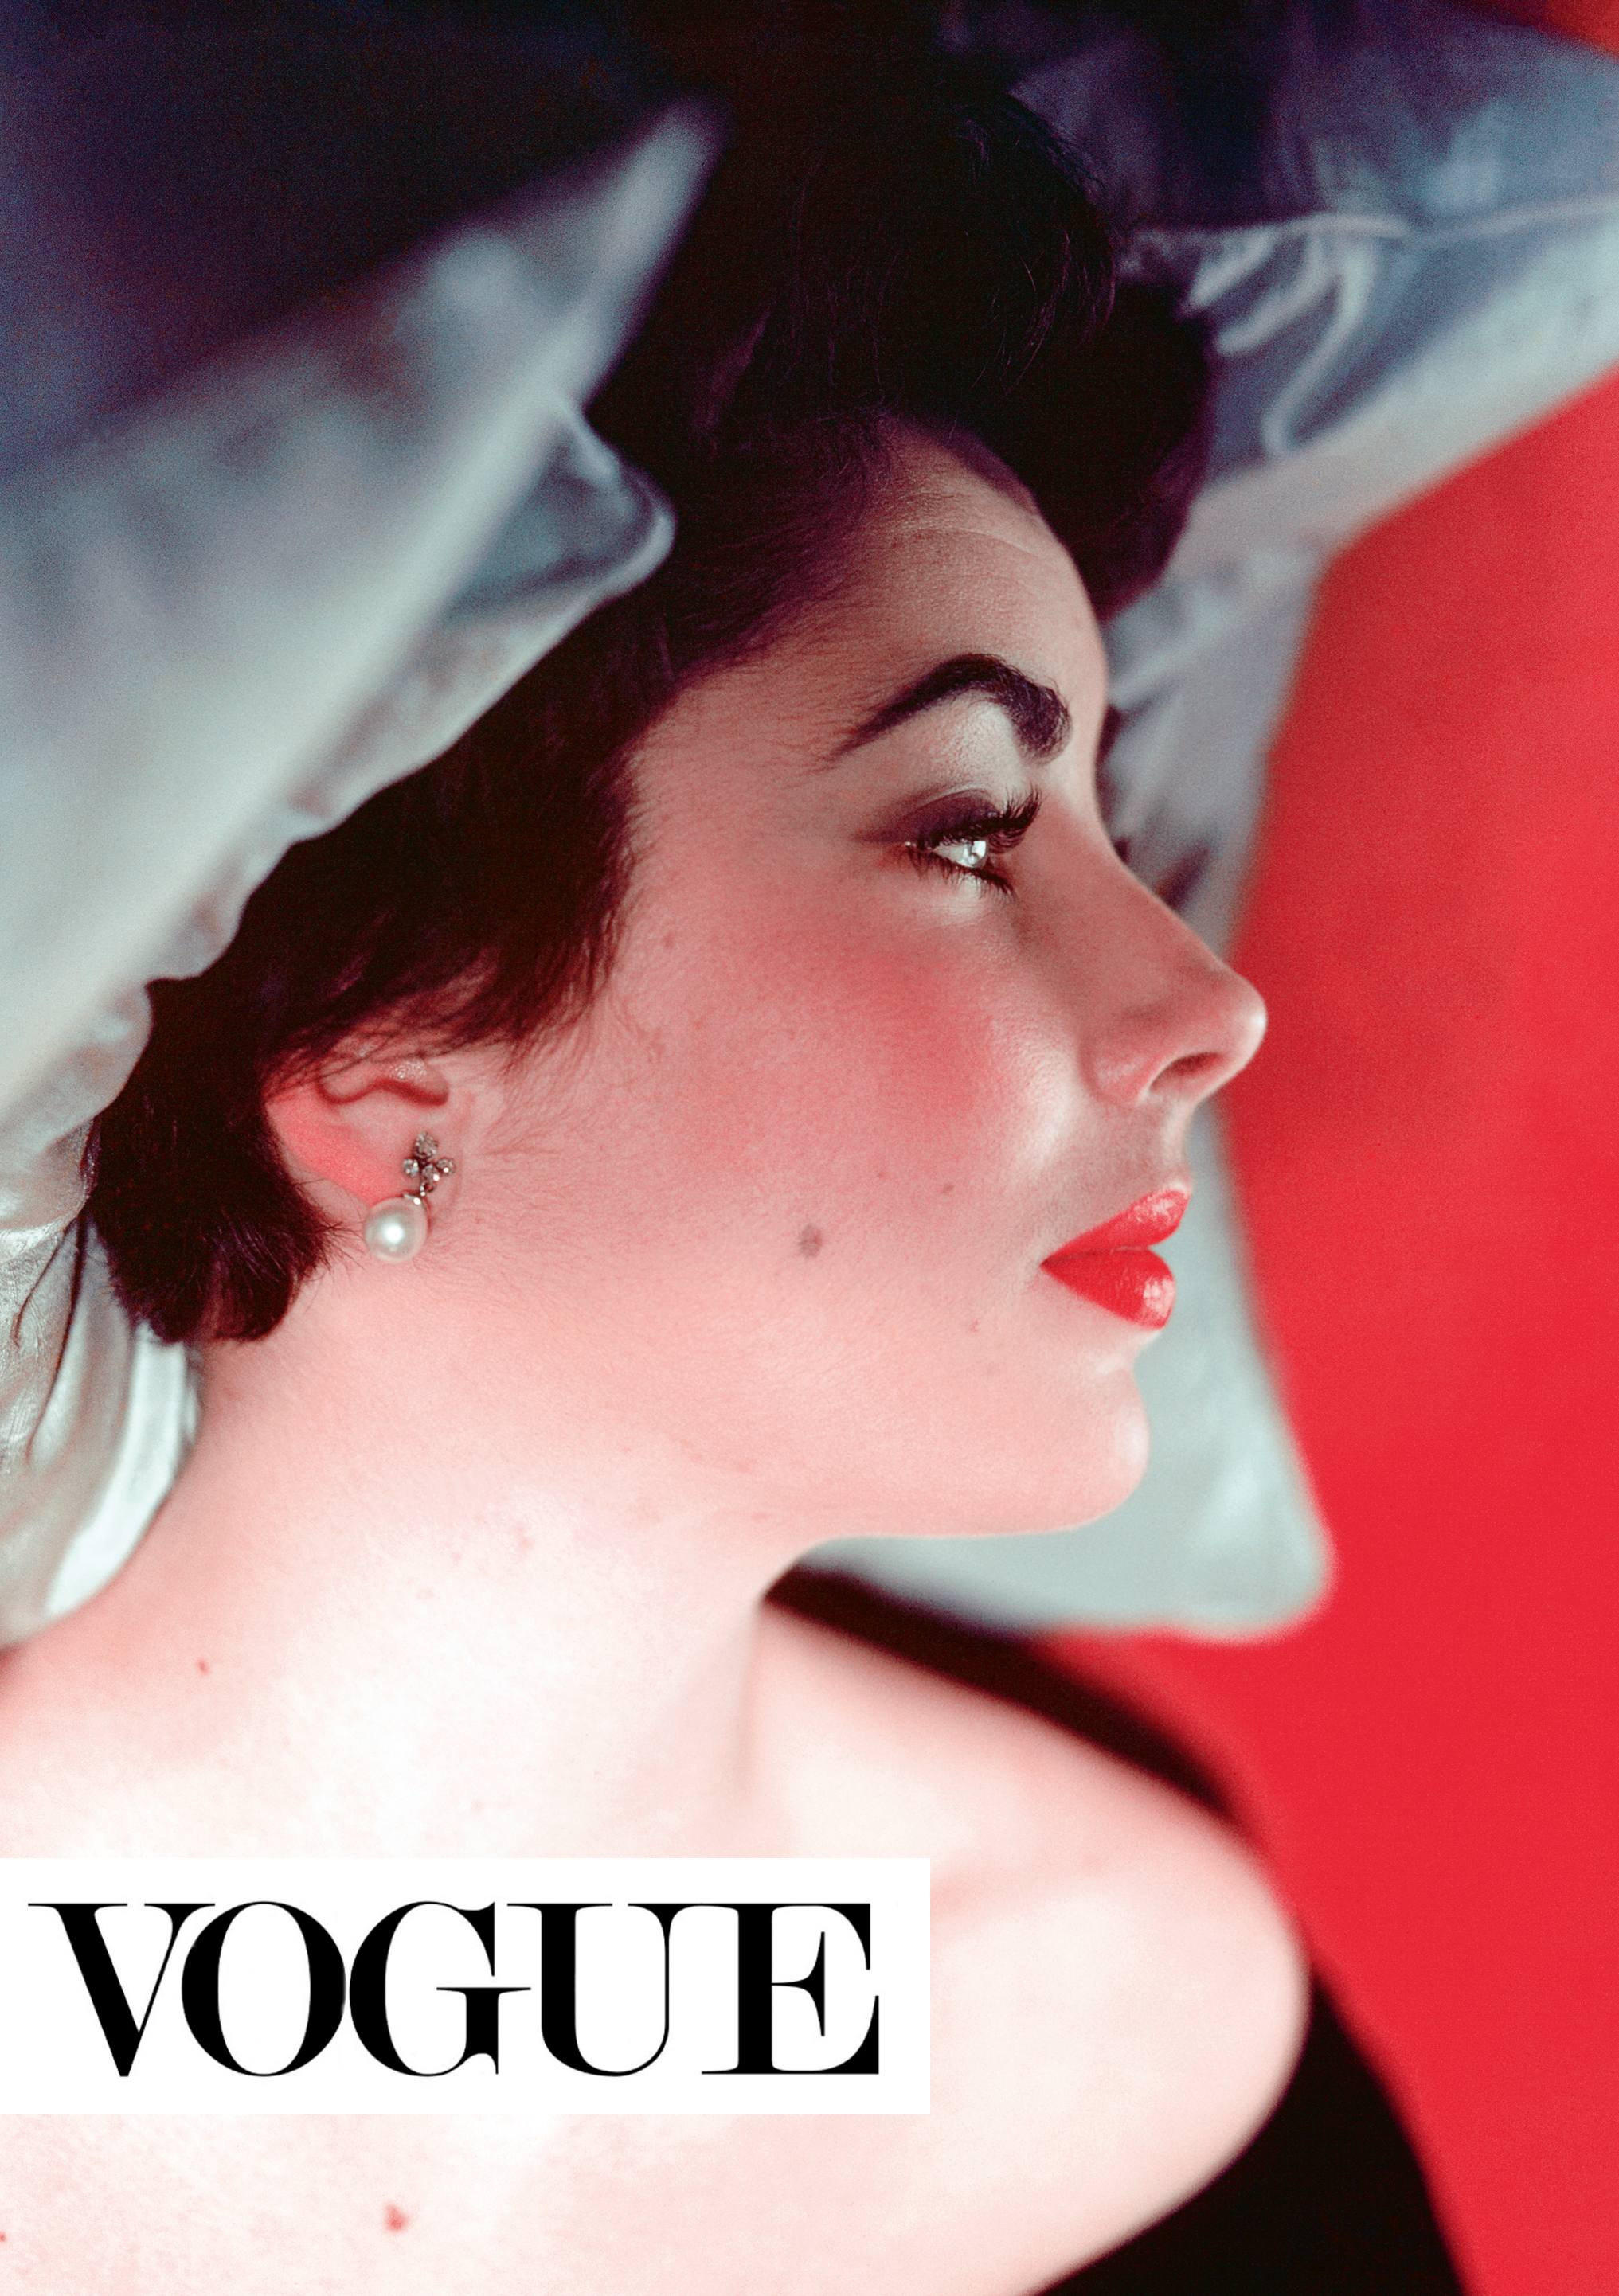 ACC Art Books and Iconic Images proudly present the work of eight wonderful photographers - Douglas Kirkland, Milton Greene, Gered Mankowitz, Norman Parkinson, Eva Sereny, Terry O'Neill, Greg Brennan and Gary Bernstein - who were fortunate enough to capture Elizabeth Taylor at different moments of her life.